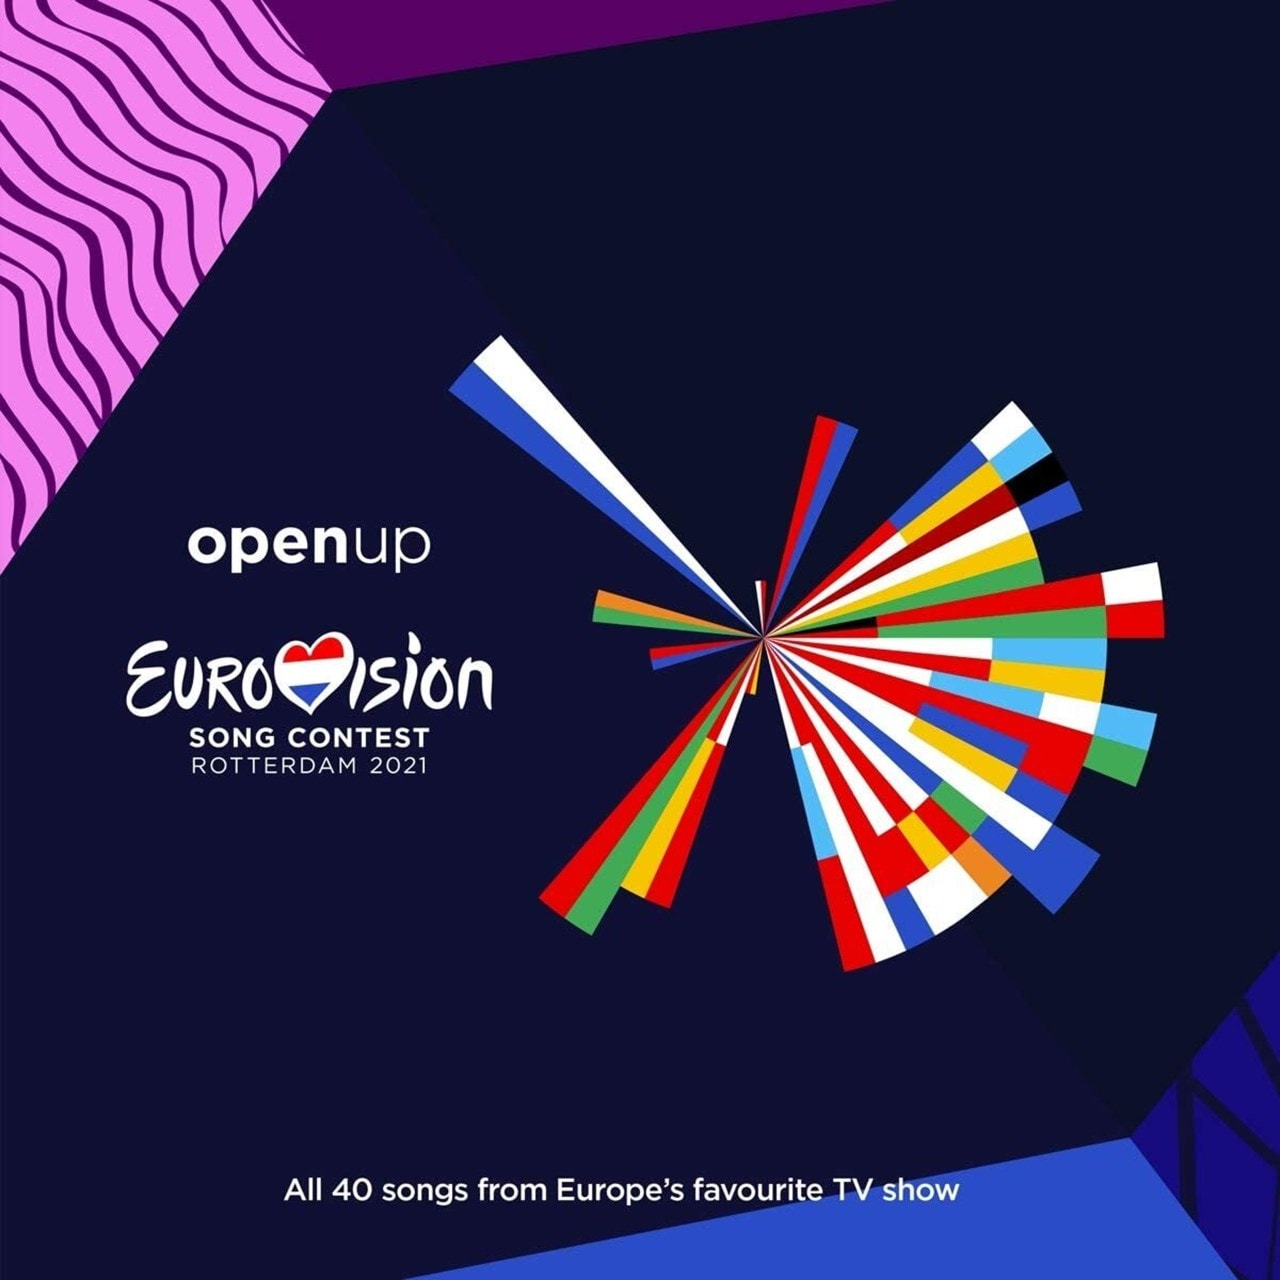 Eurovision Song Contest 2021: Rotterdam - 1